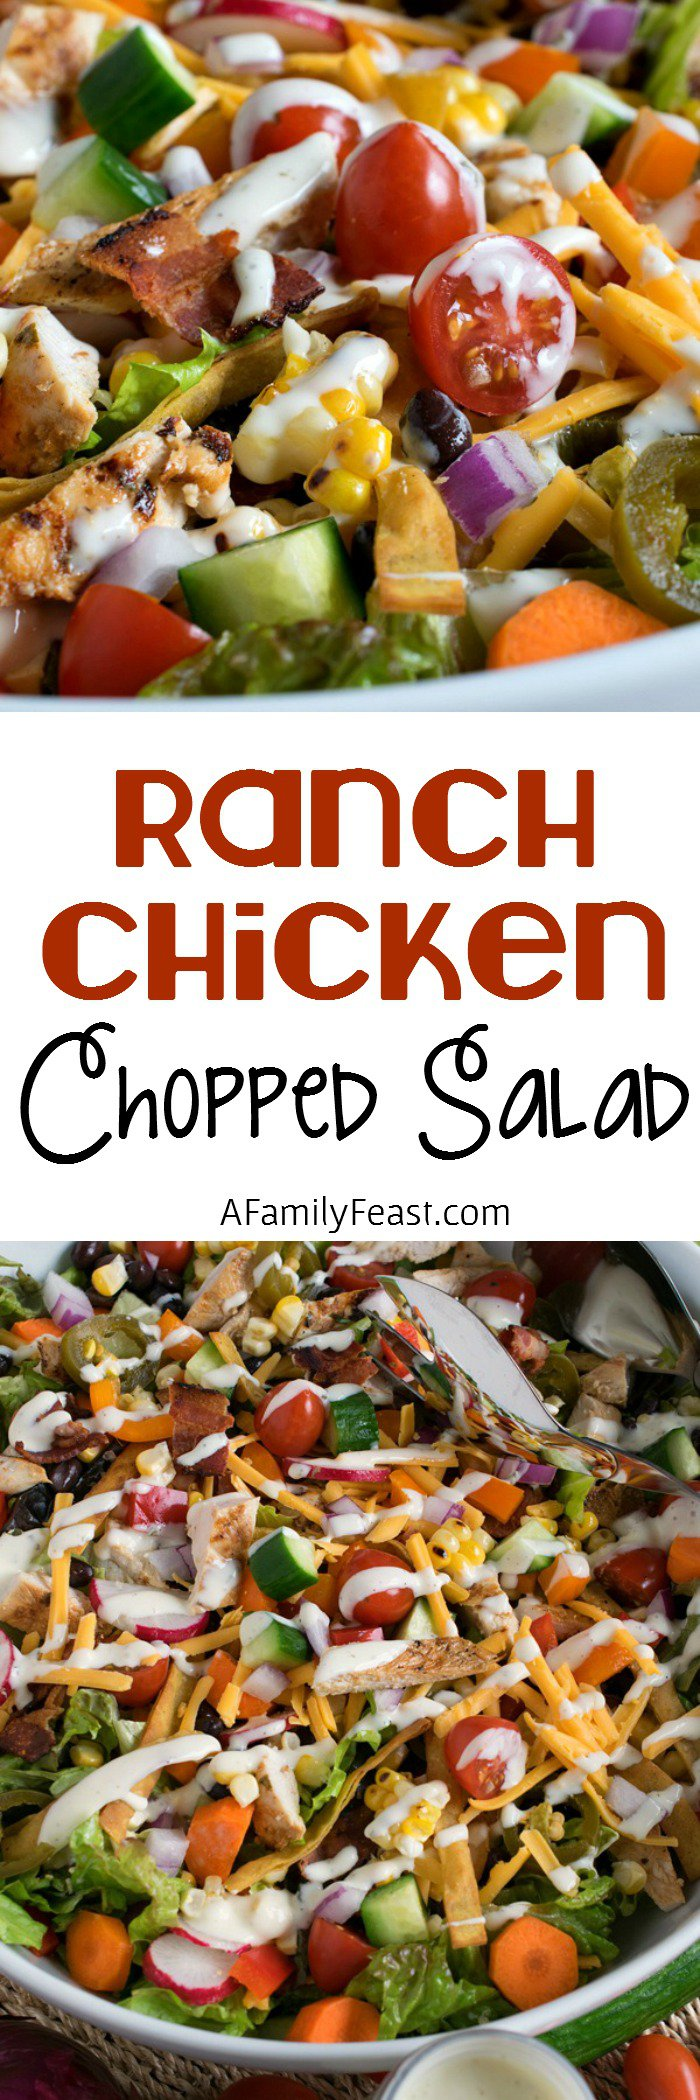 Ranch Chicken Chopped Salad – Grilled chicken, fresh veggies, tortilla strips and cheese – plus a delicious Ranch Dressing!